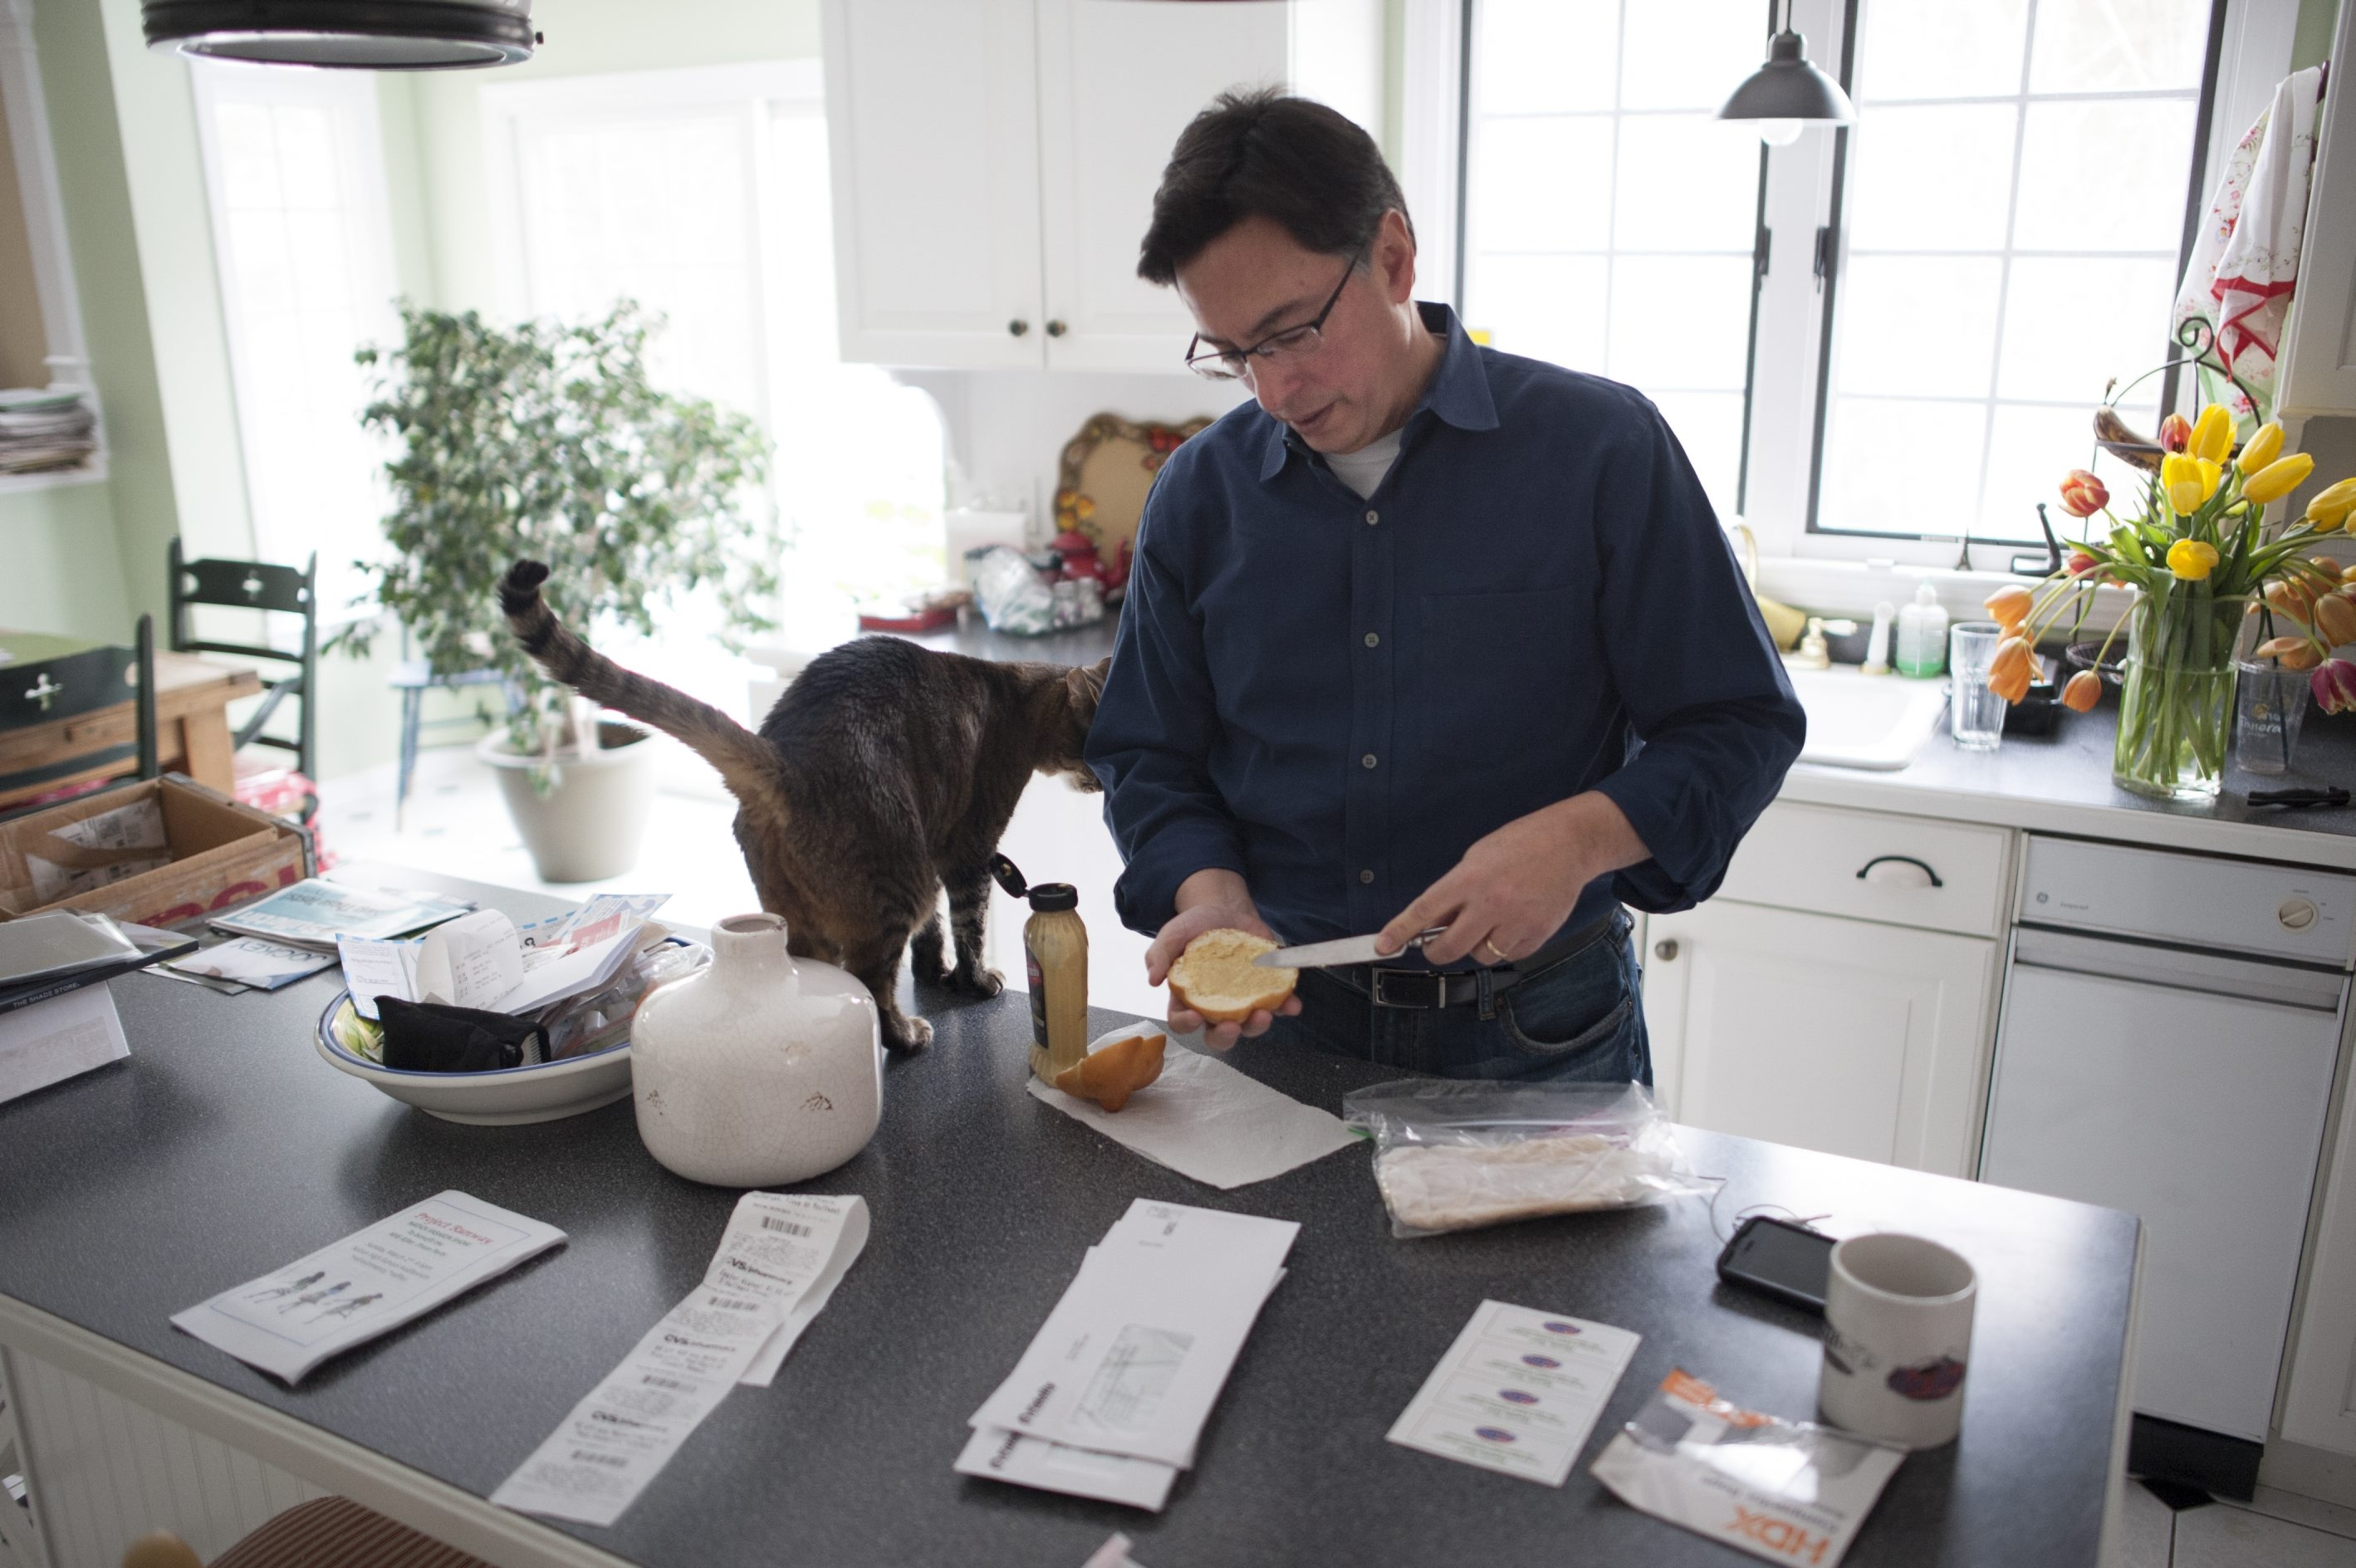 Abe Gorelick, an experienced marketing professional, prepares lunch before starting his shift as a part-time taxi driver in Natick, Mass. Uncertainty about the future for him and others racked by the recession nationwide remains a pressing economic question.